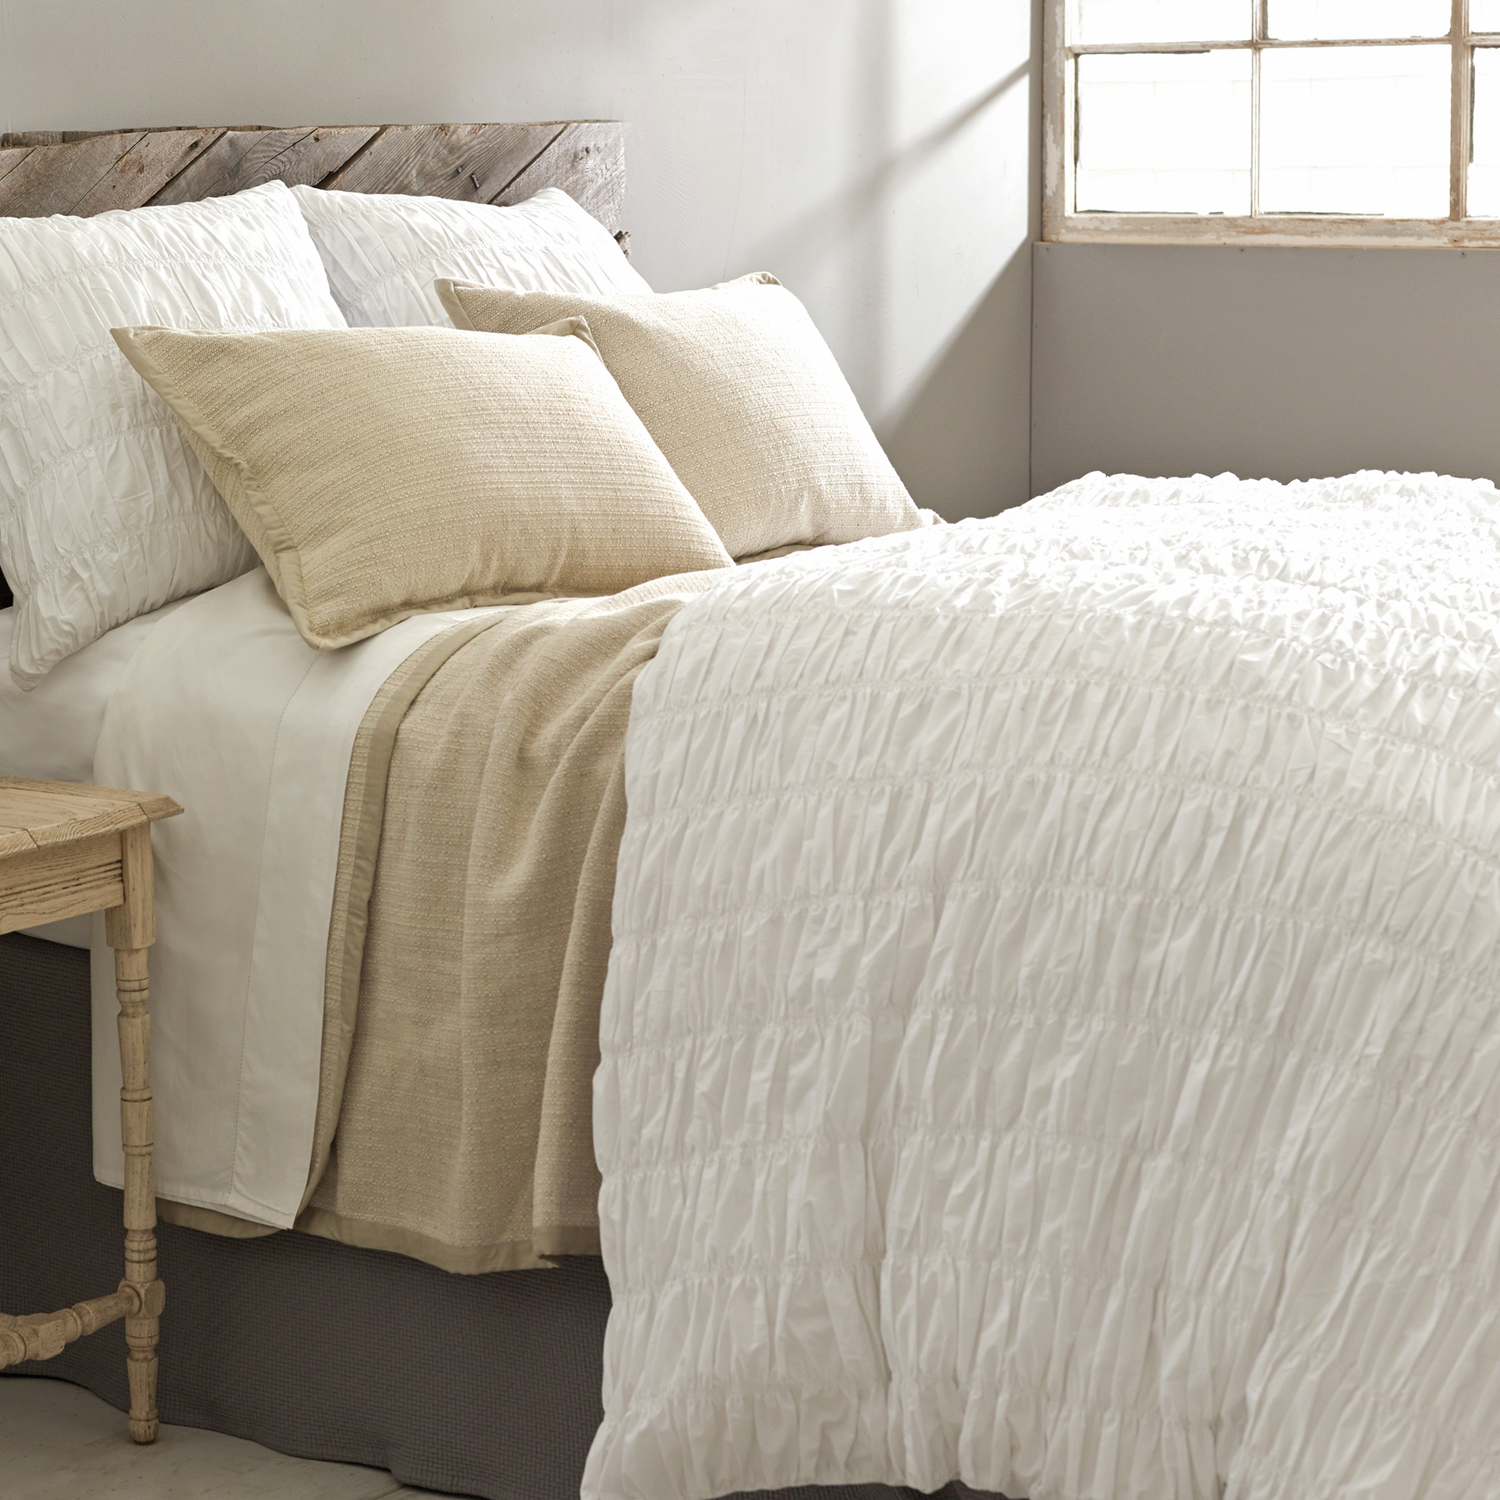 Charming Pine Cone Hill Bedding In White And Beige With Wooden Headboard For Bed Ideas